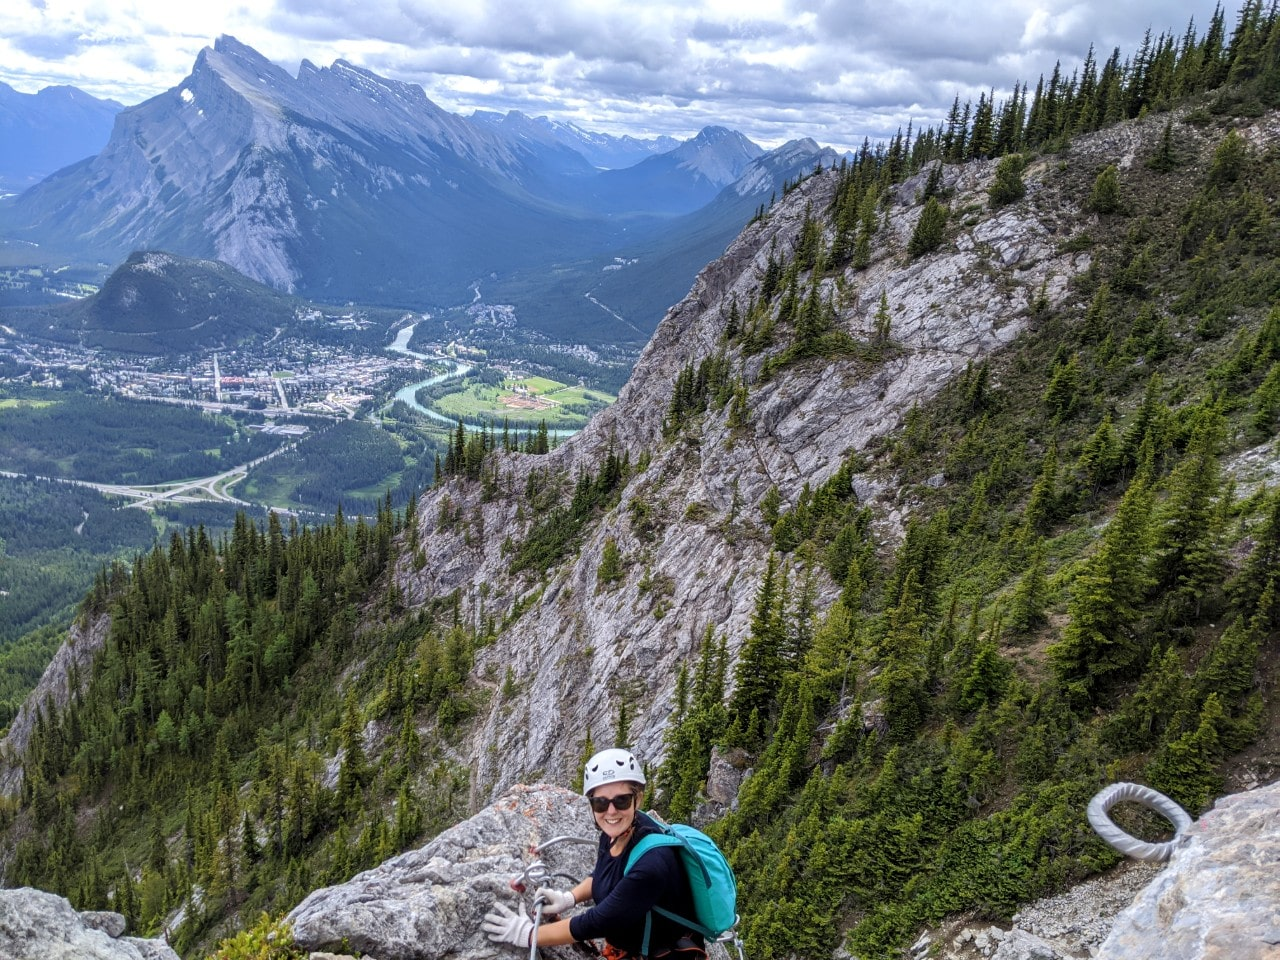 Gemma sat on rock looking at camera with elevated views behind of Banff, Mount Rundle and other mountains